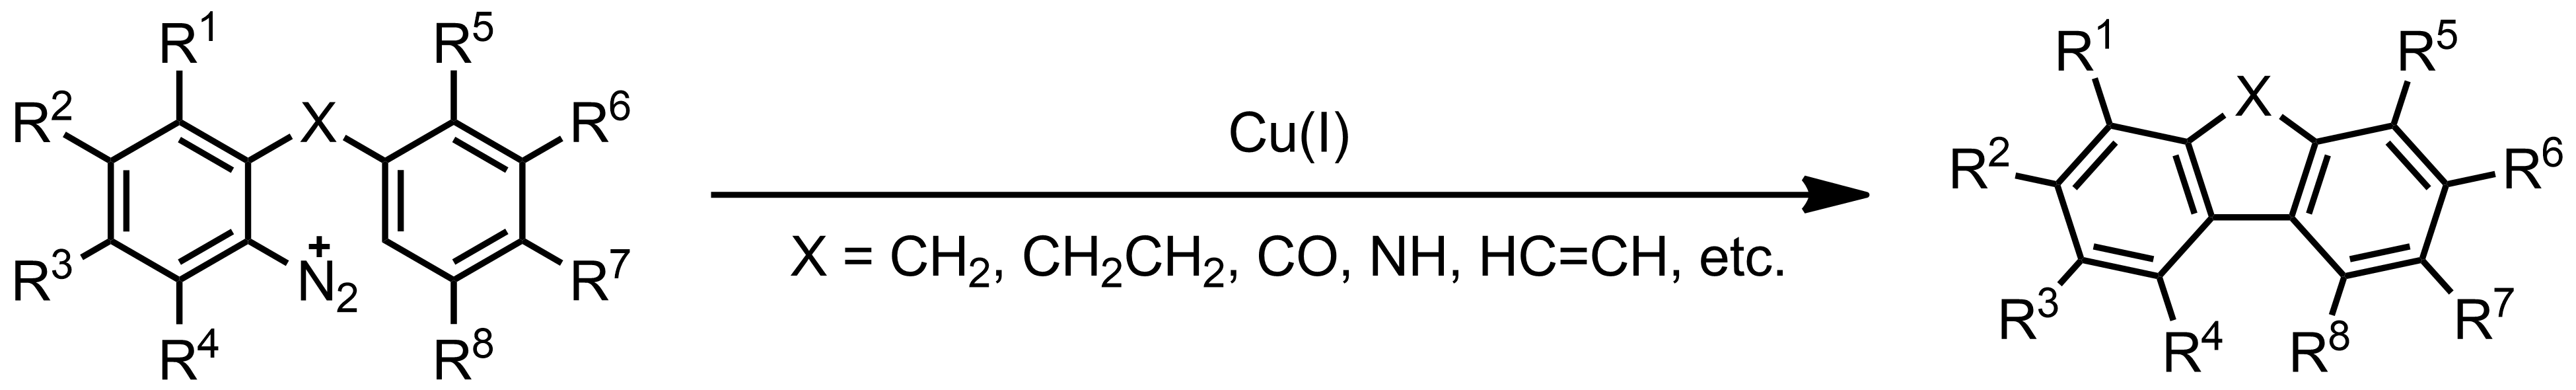 Schematic representation of the Pschorr Reaction.